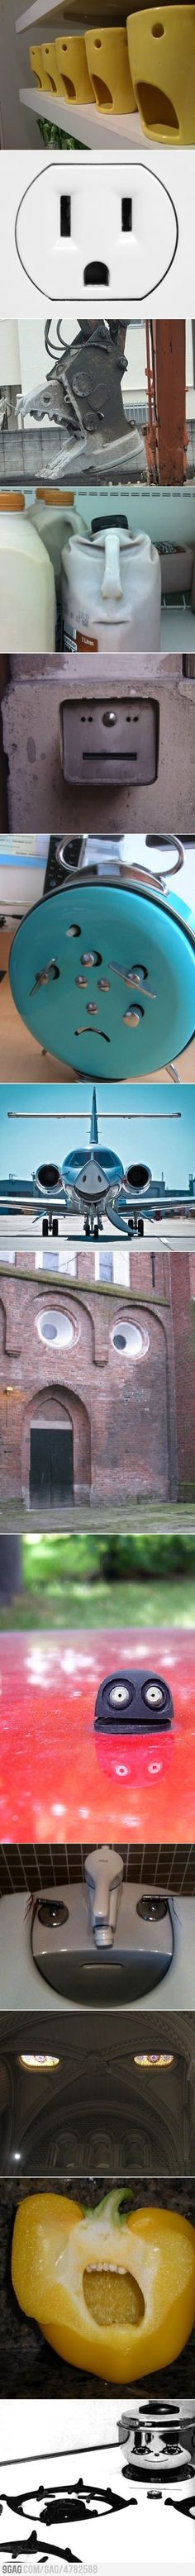 accidental faces